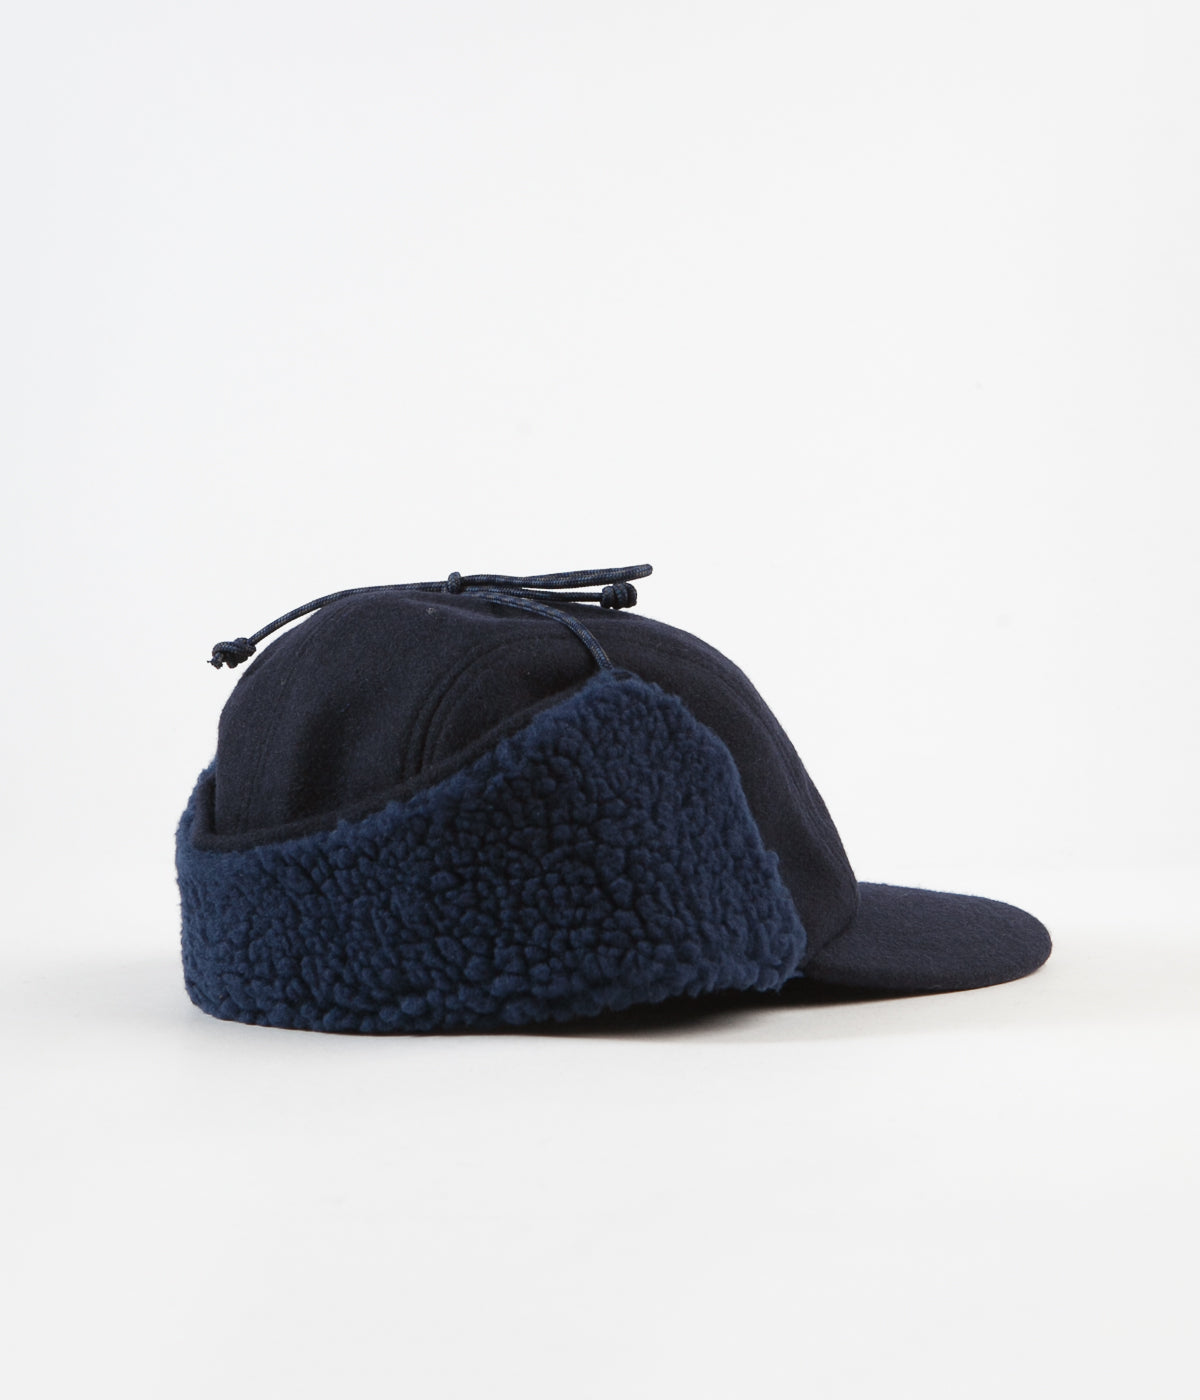 d1fd205bf6928 ... Patagonia Recycled Wool Ear Flap Cap - Classic Navy ...